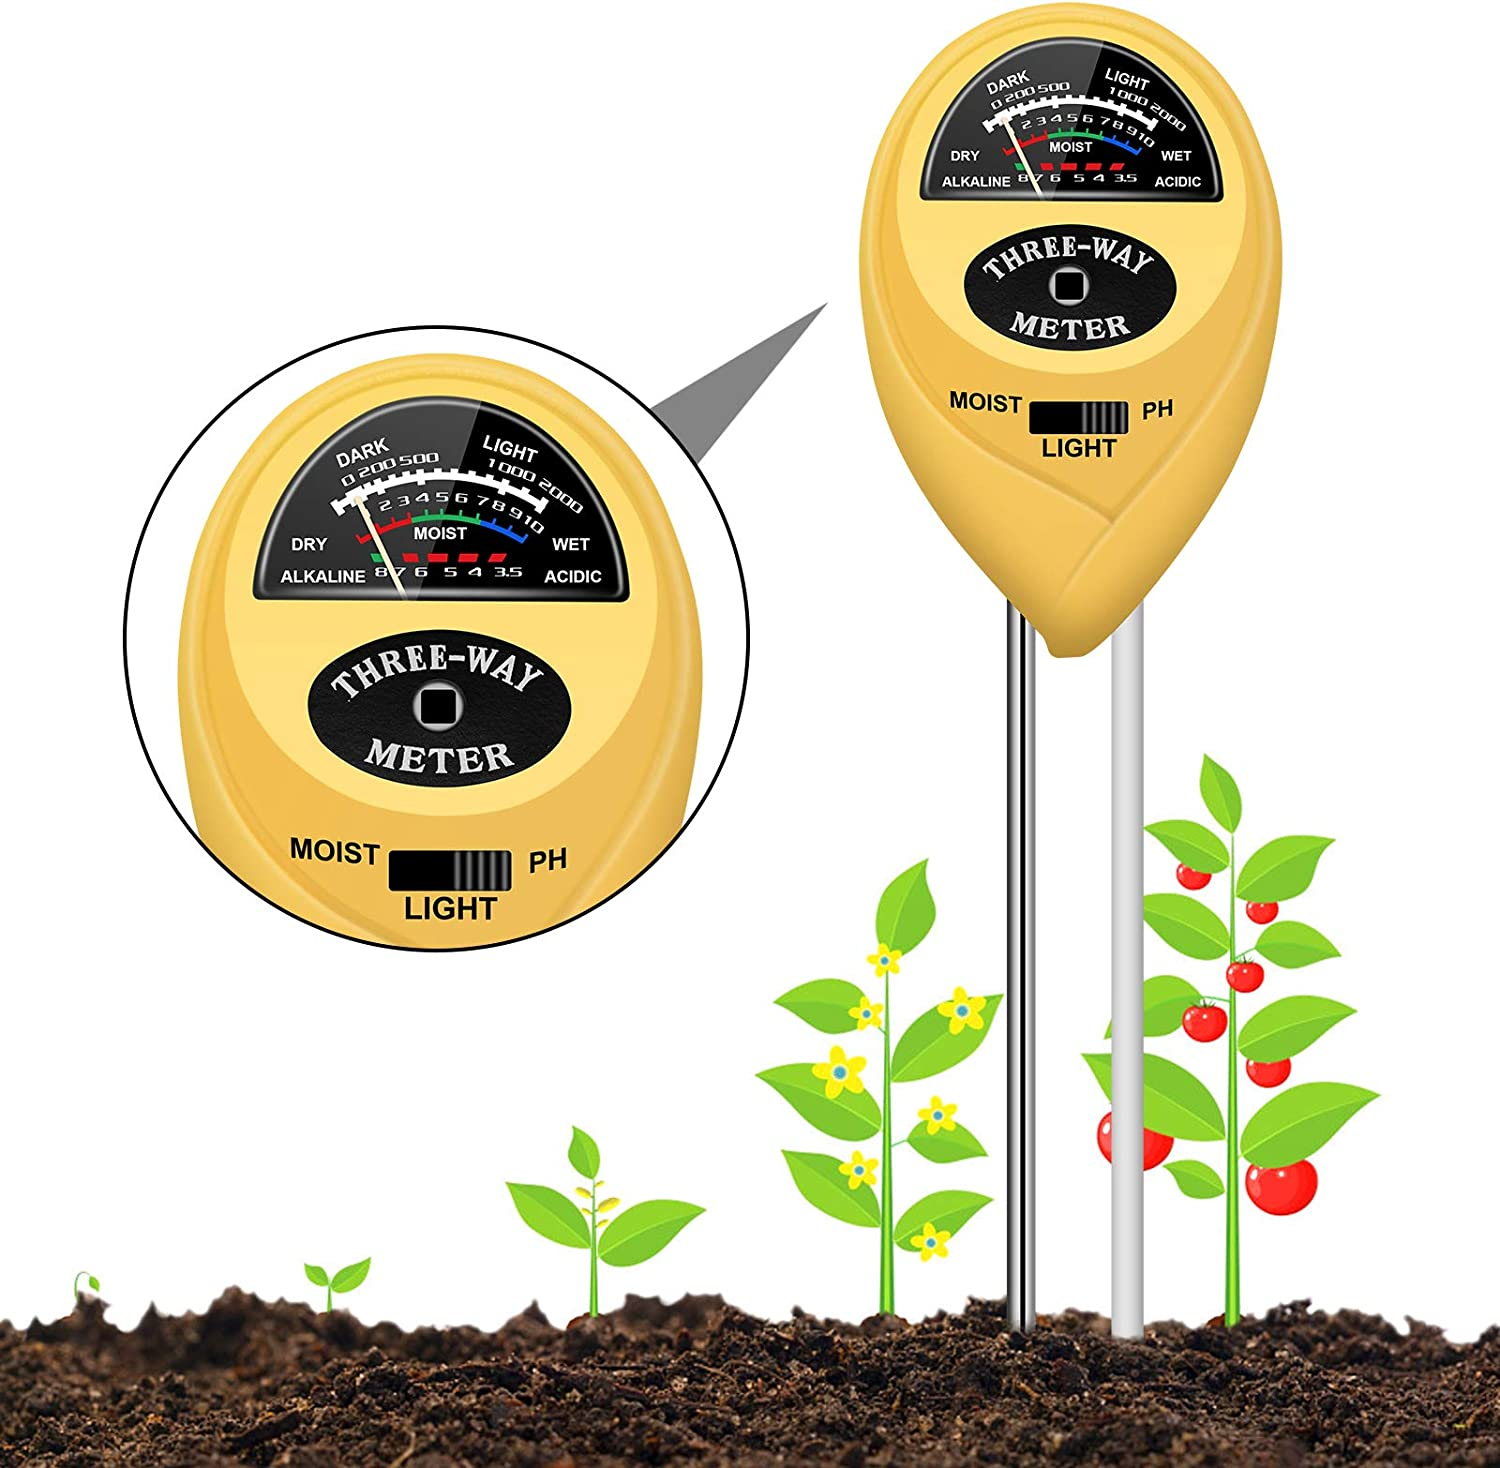 Soil pH Meter, Plants Moisture Meter, 3-in-1 Test Tool Kits with PH/Light/Moisture Sensor for Plant, Great Tester for Garden, Farm, Indoor & Outdoor Use, Thermometer Water Monitor(No Battery Needed)